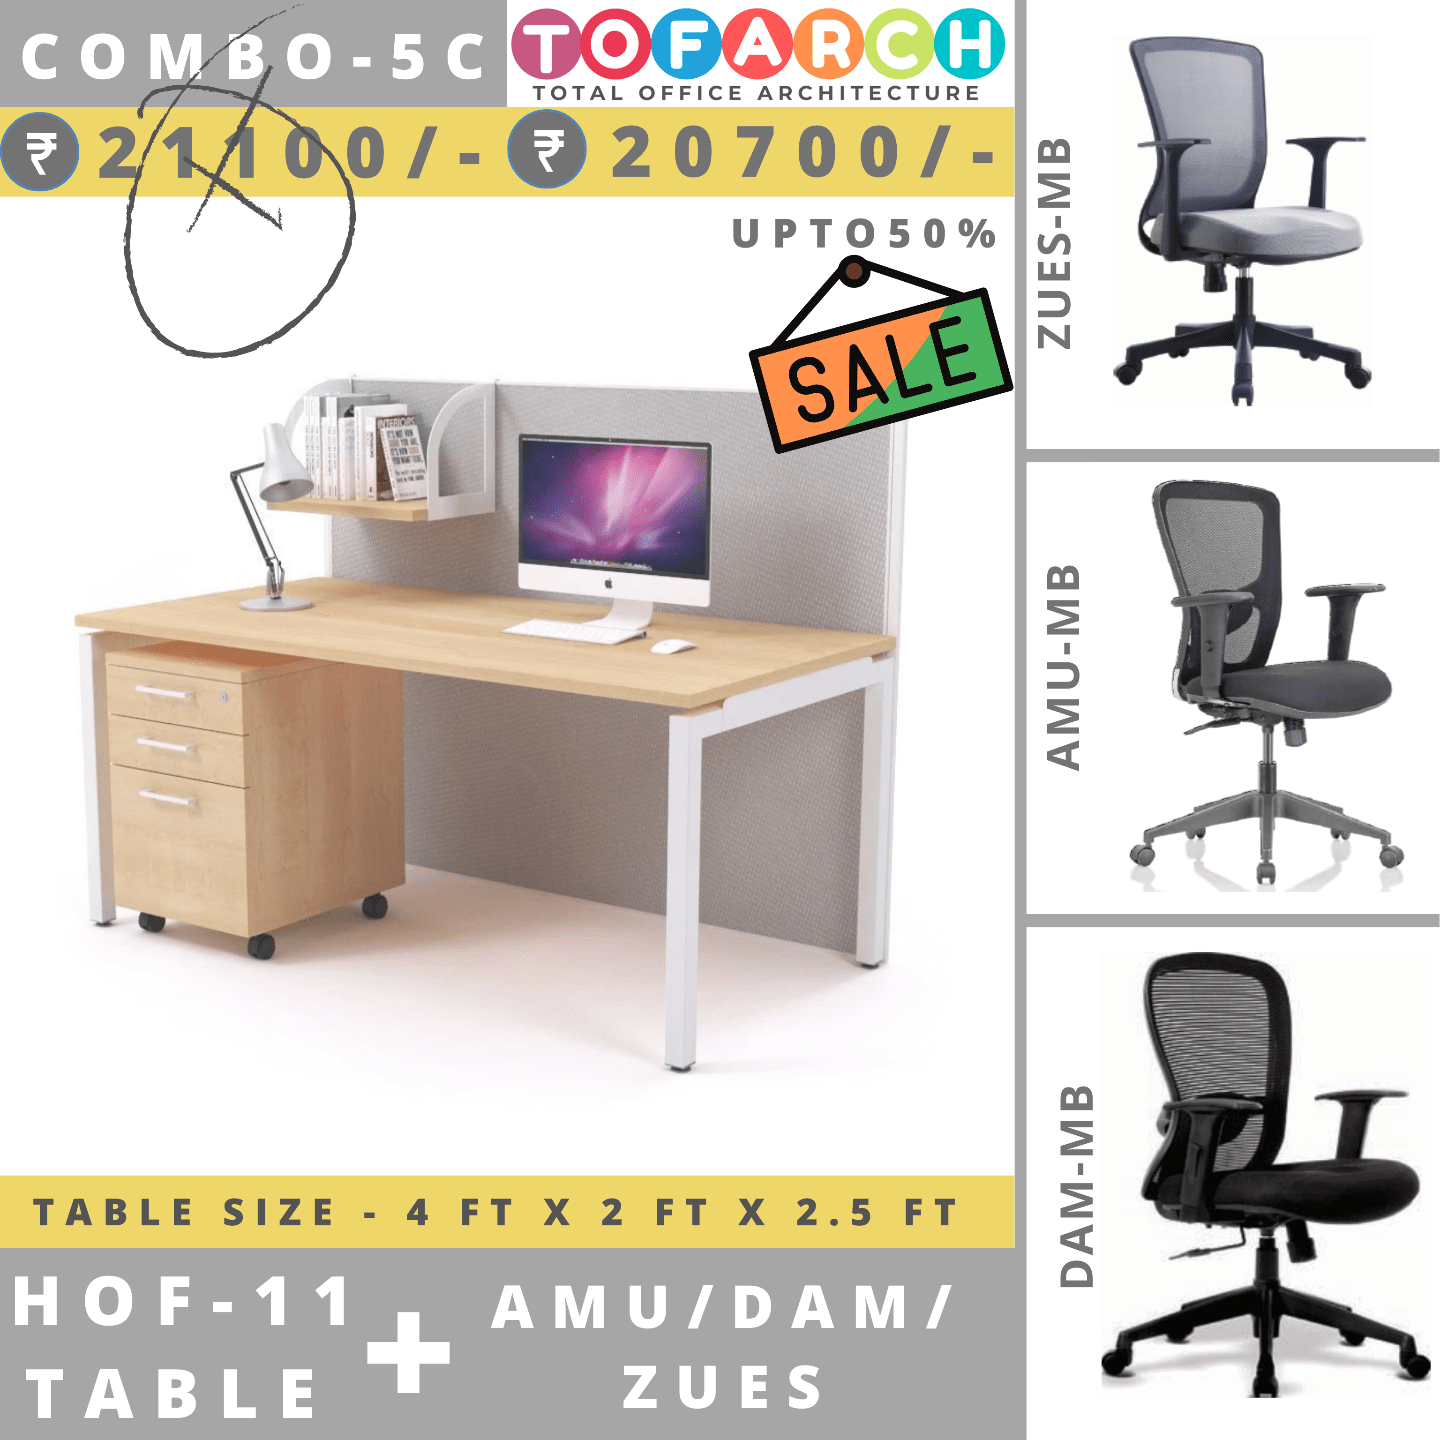 Table Chair Combo - 5C (HOF 11 Table + AMU / DAM / ZUES Chair)